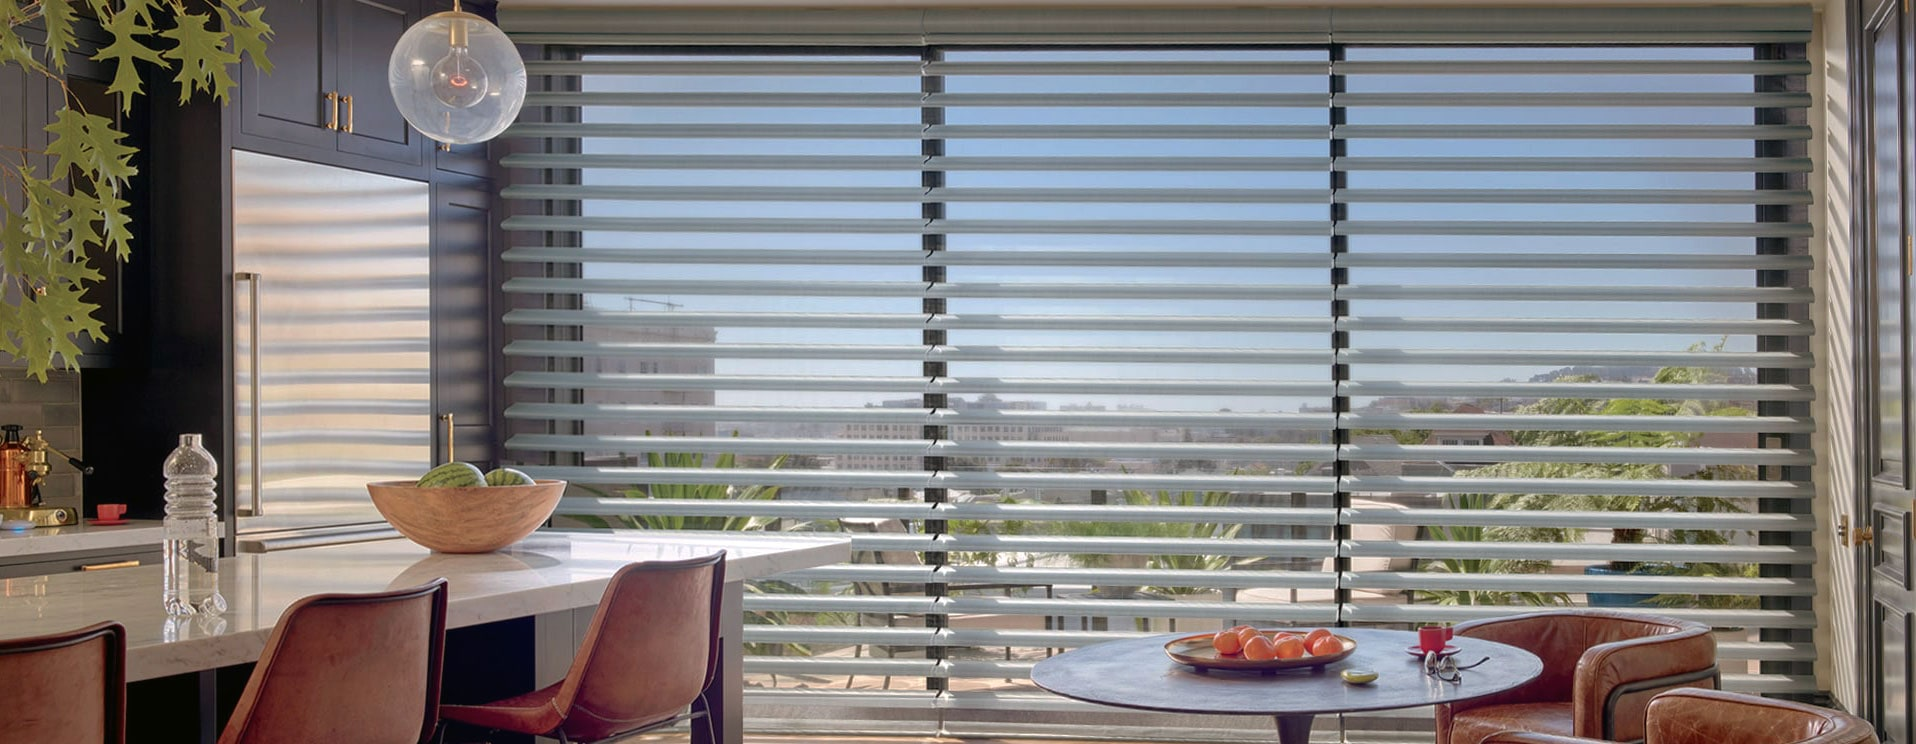 Pirouette window shadings in kitchen